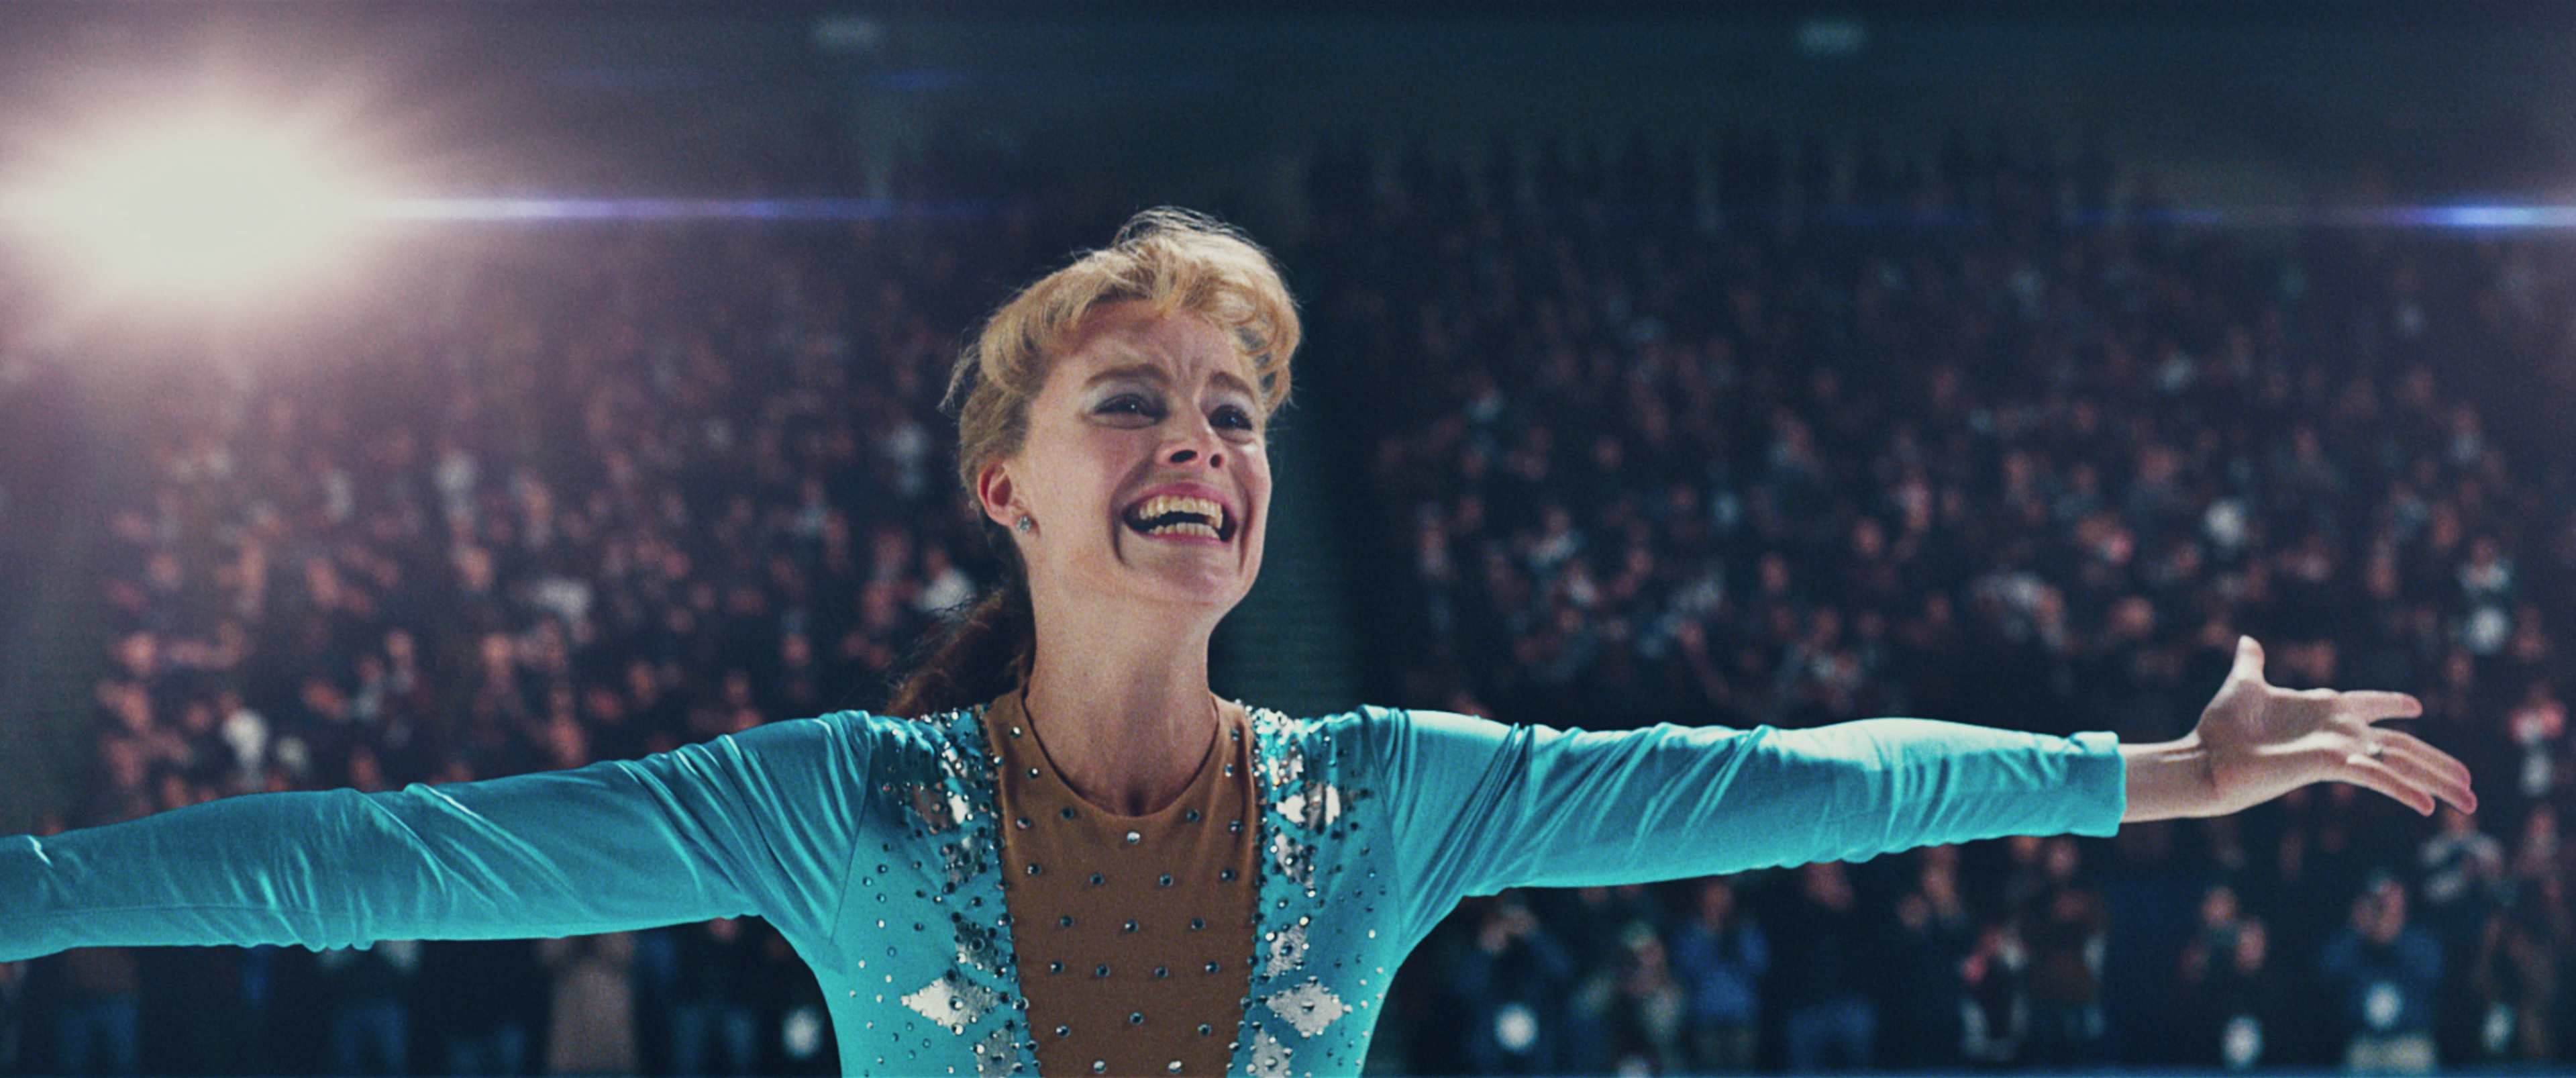 1-Tonya Harding (Margot Robbie) after landing the triple axel in I, TONYA, courtesy of NEON